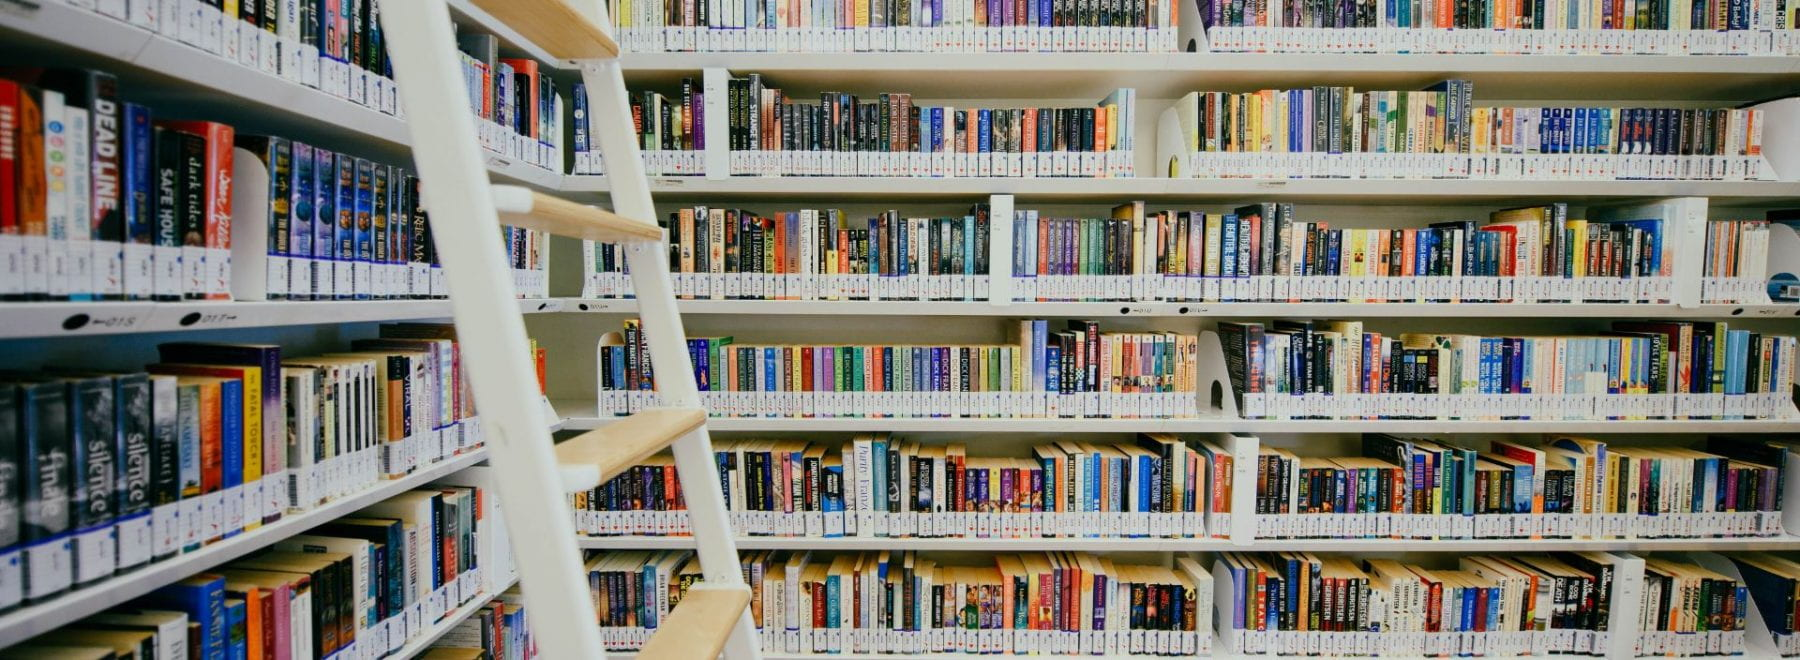 Shelves full of books in a library